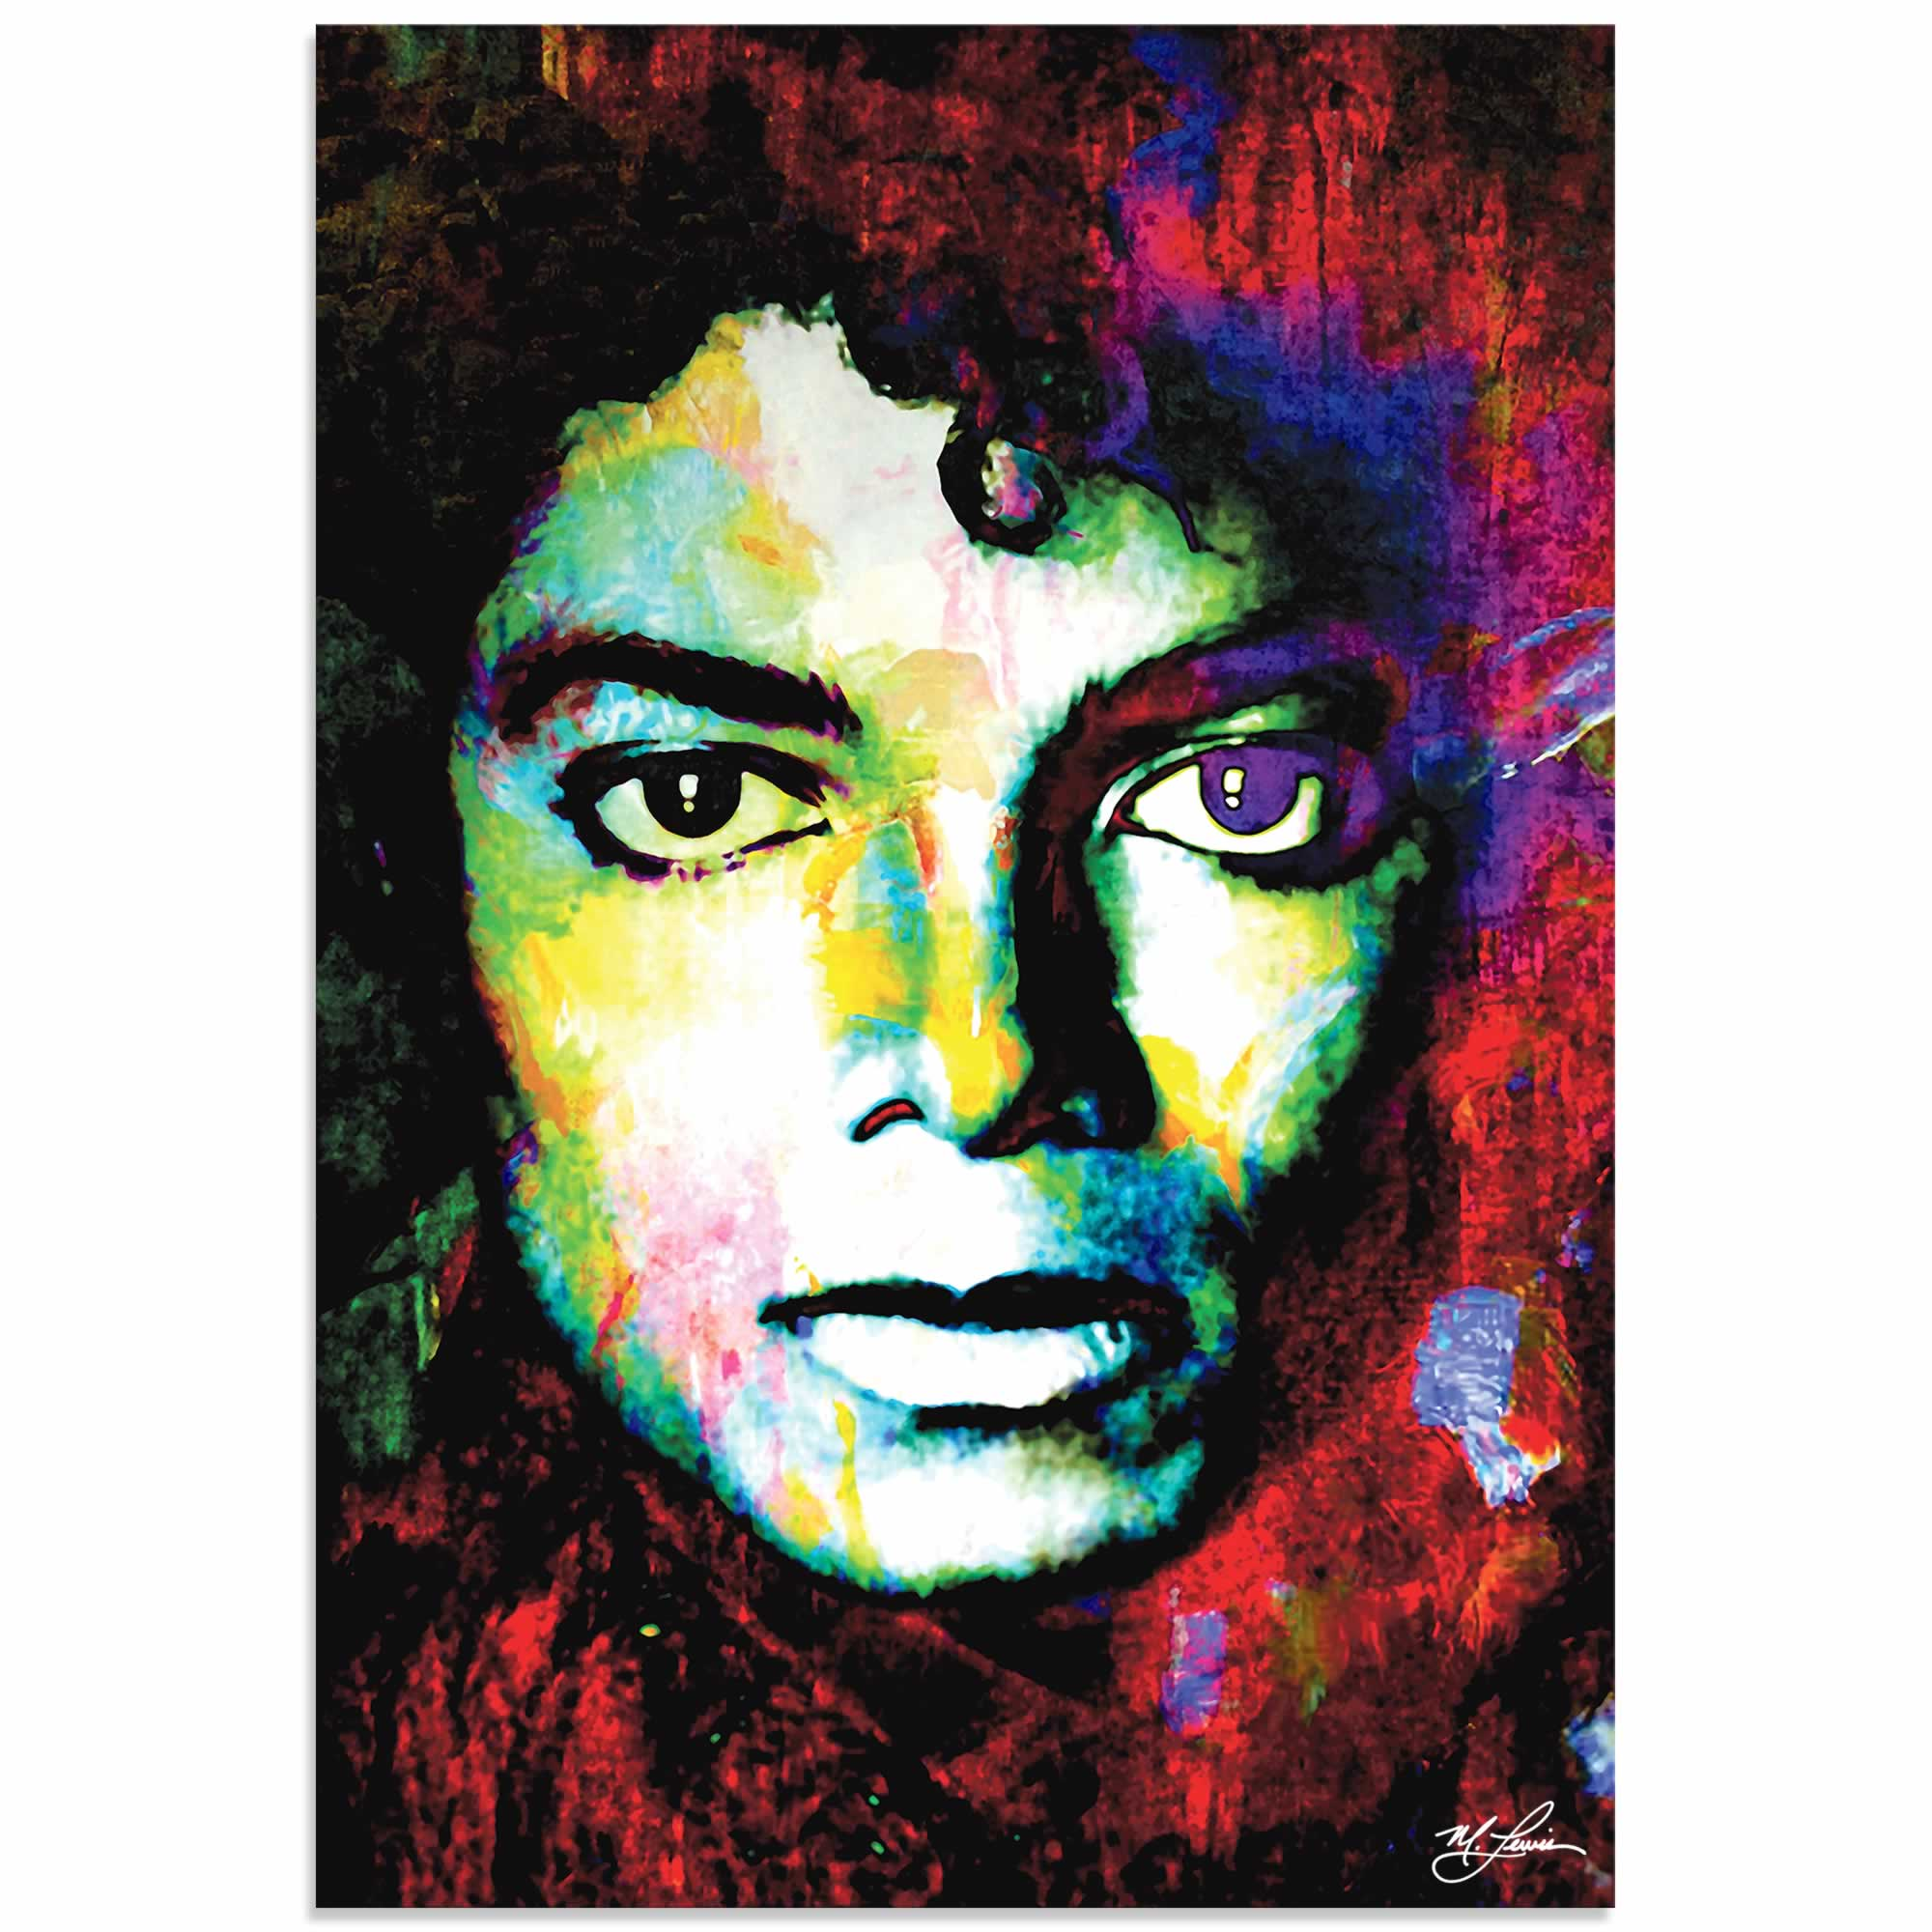 Michael Jackson Study 1 by Mark Lewis - Celebrity Pop Art on Metal or Plexiglass